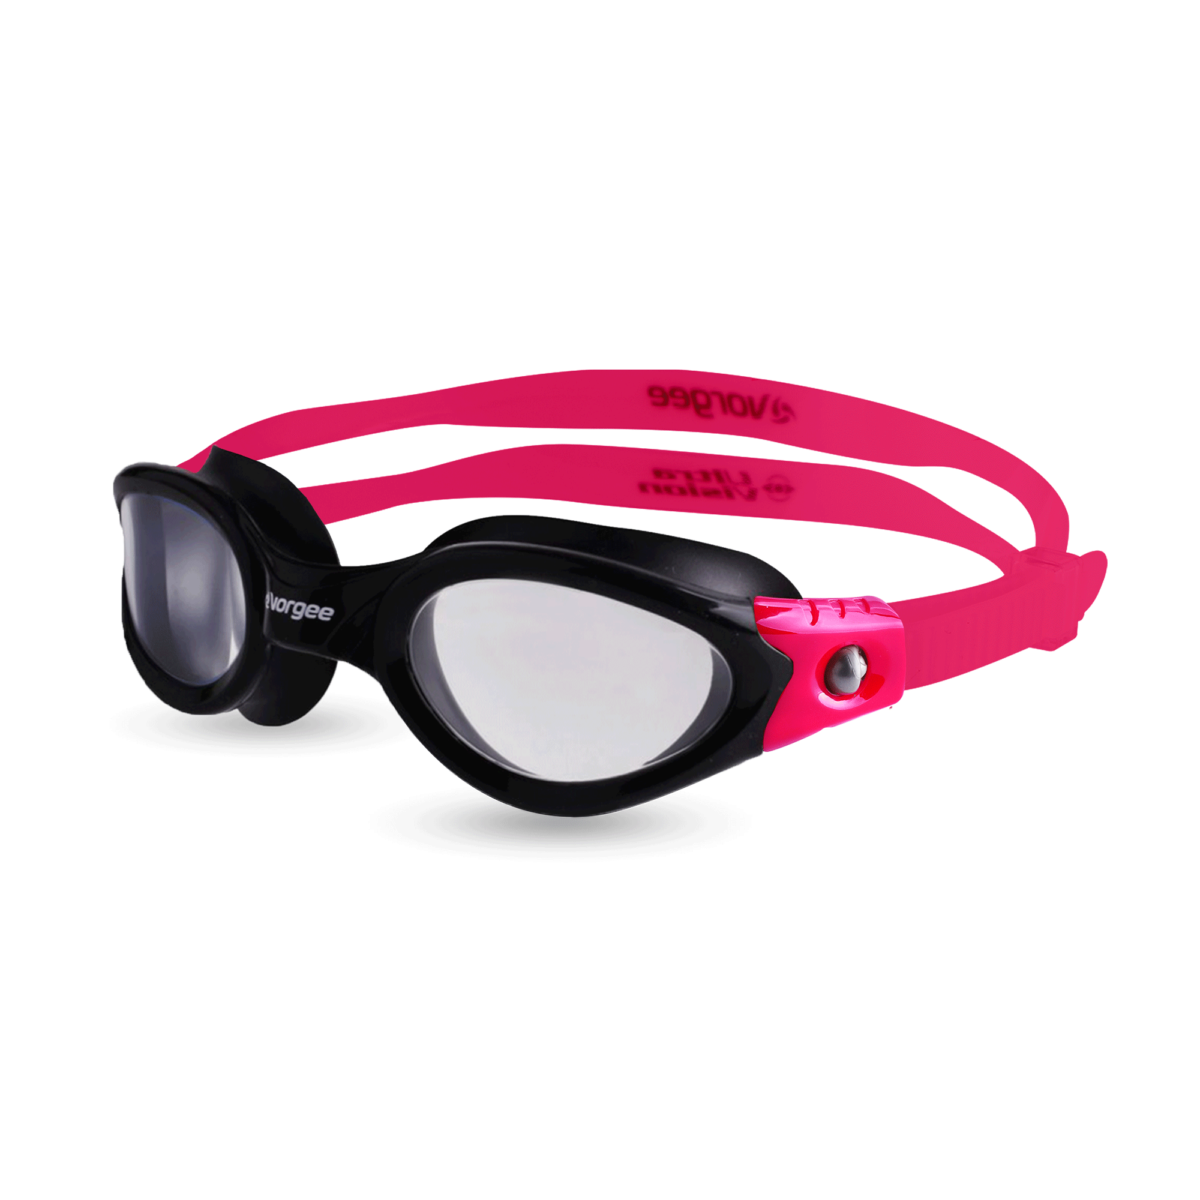 Black & Pink - NBCF Vortech Clear - Fitness Goggle - website